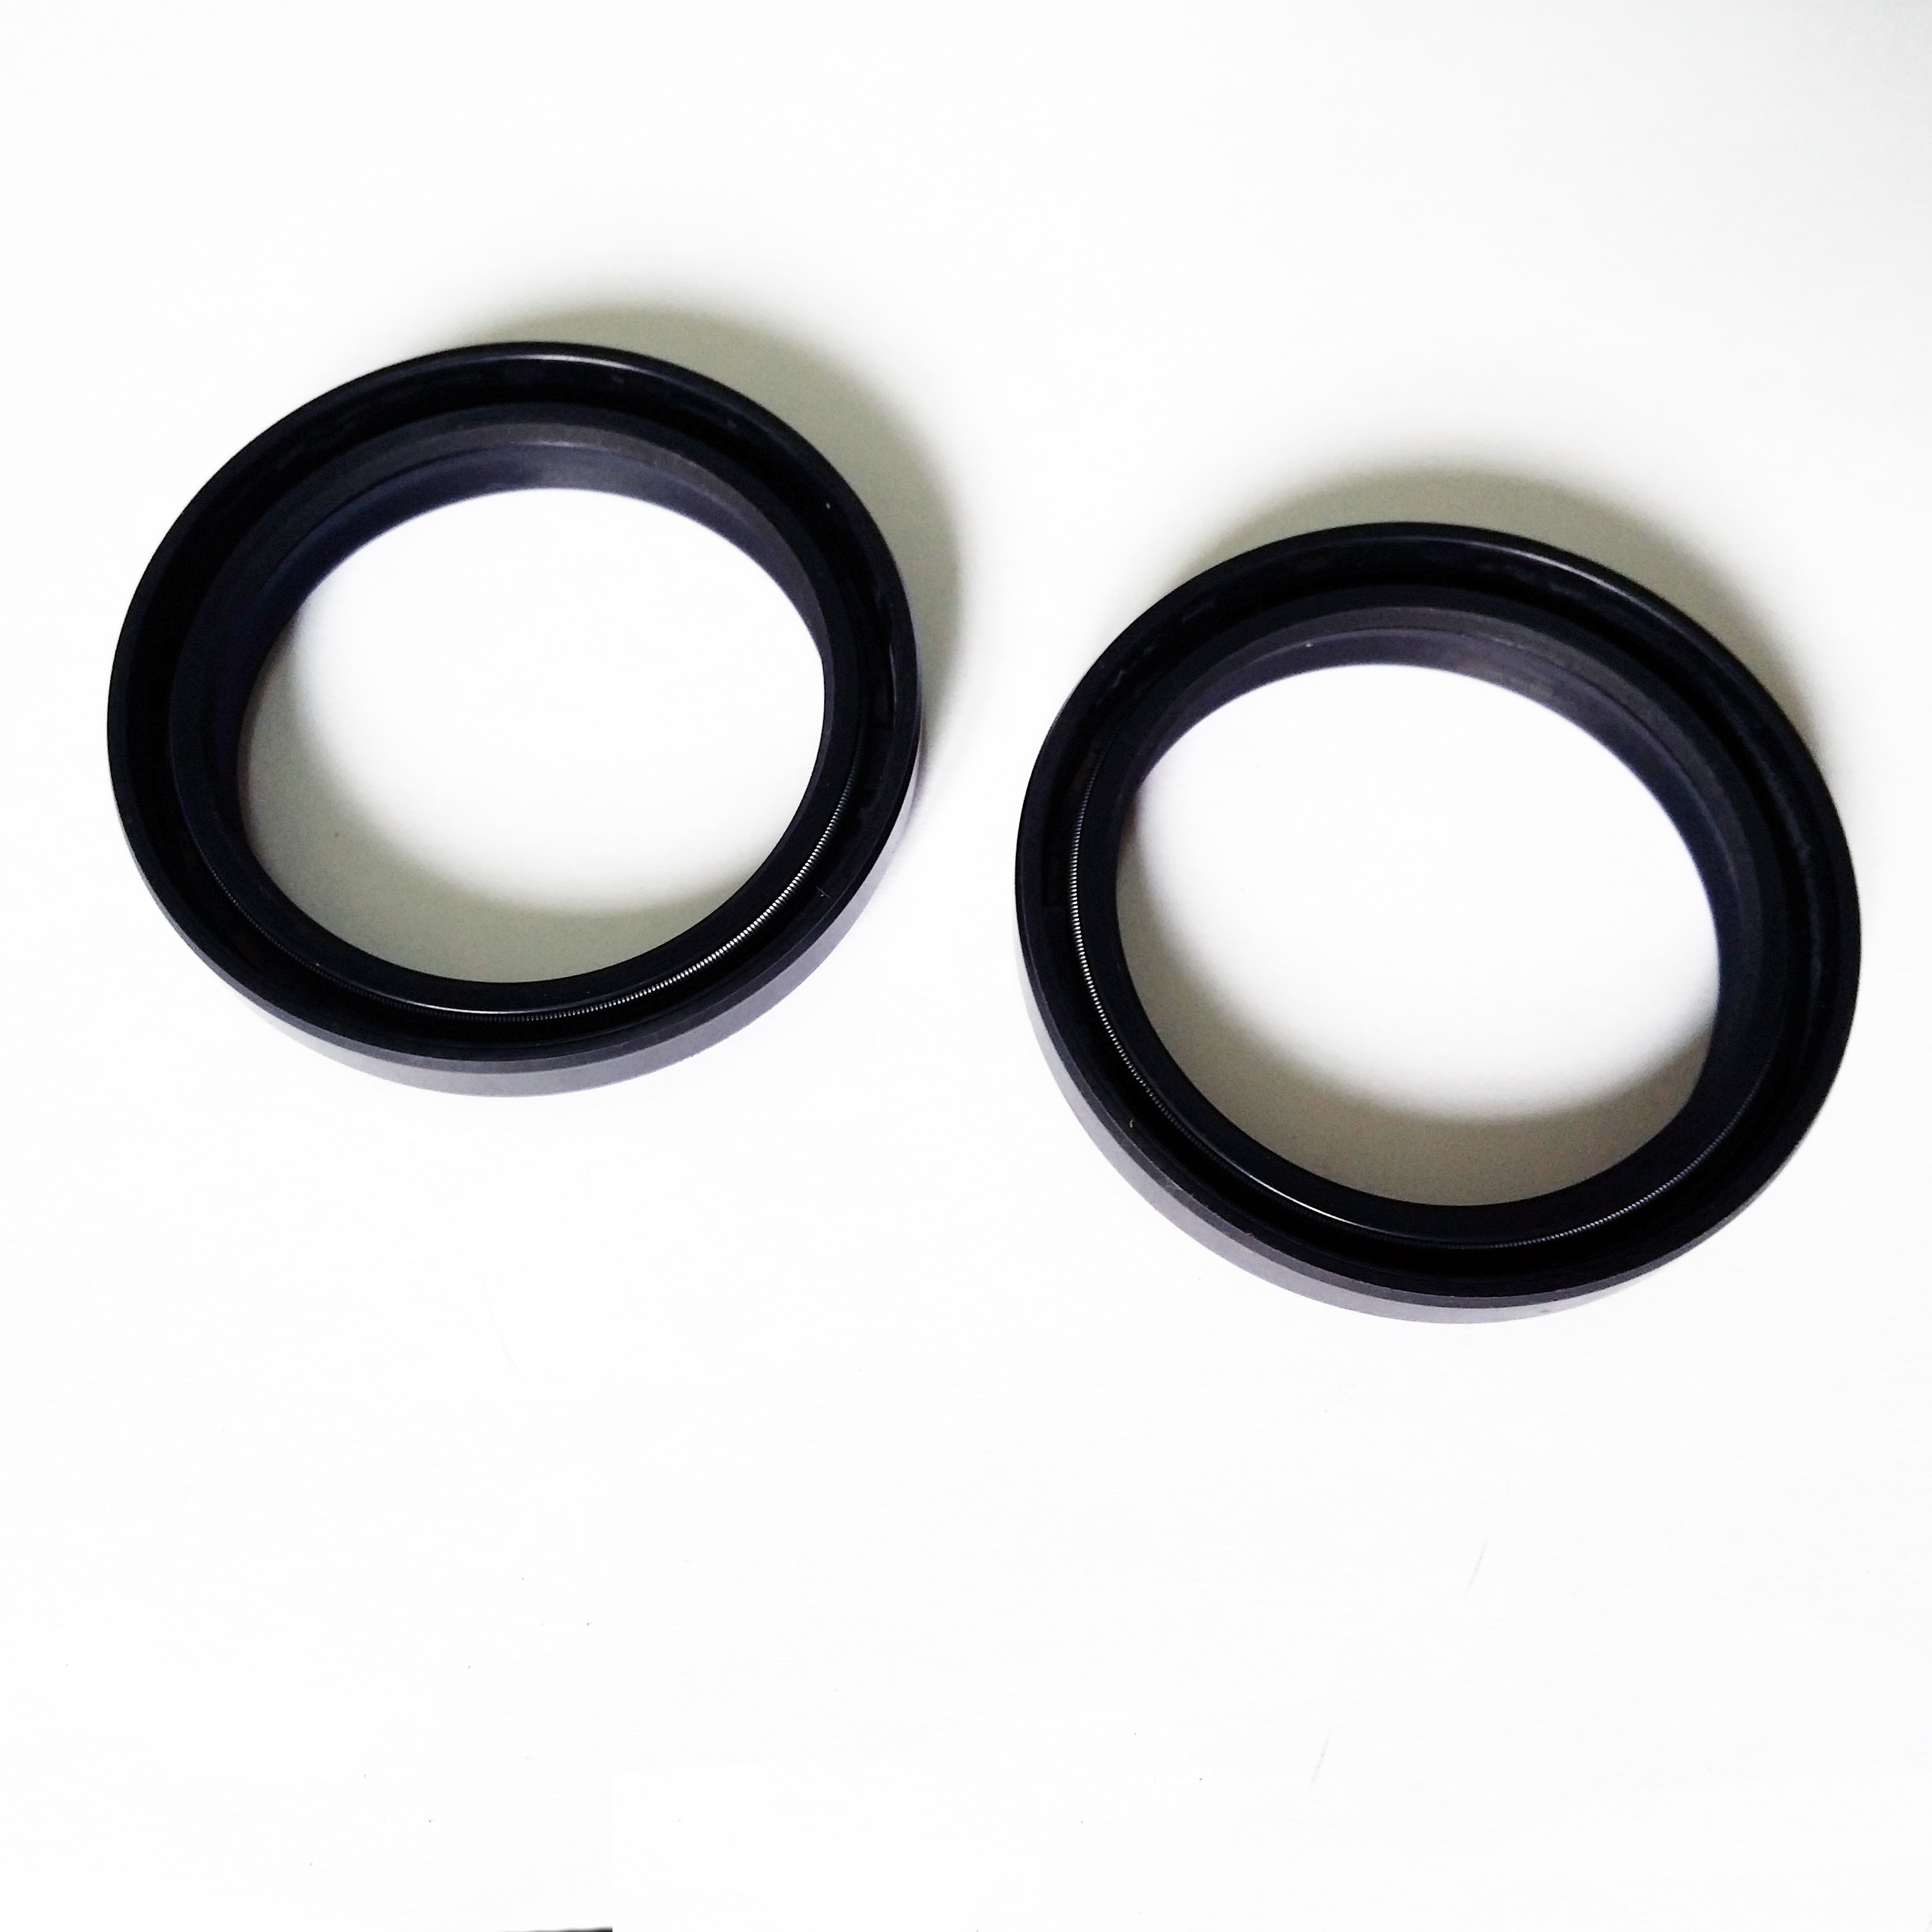 K-Tech Ducati 400SS 1992-1995 NOK Front Fork Oil Seals 41x54x11mm